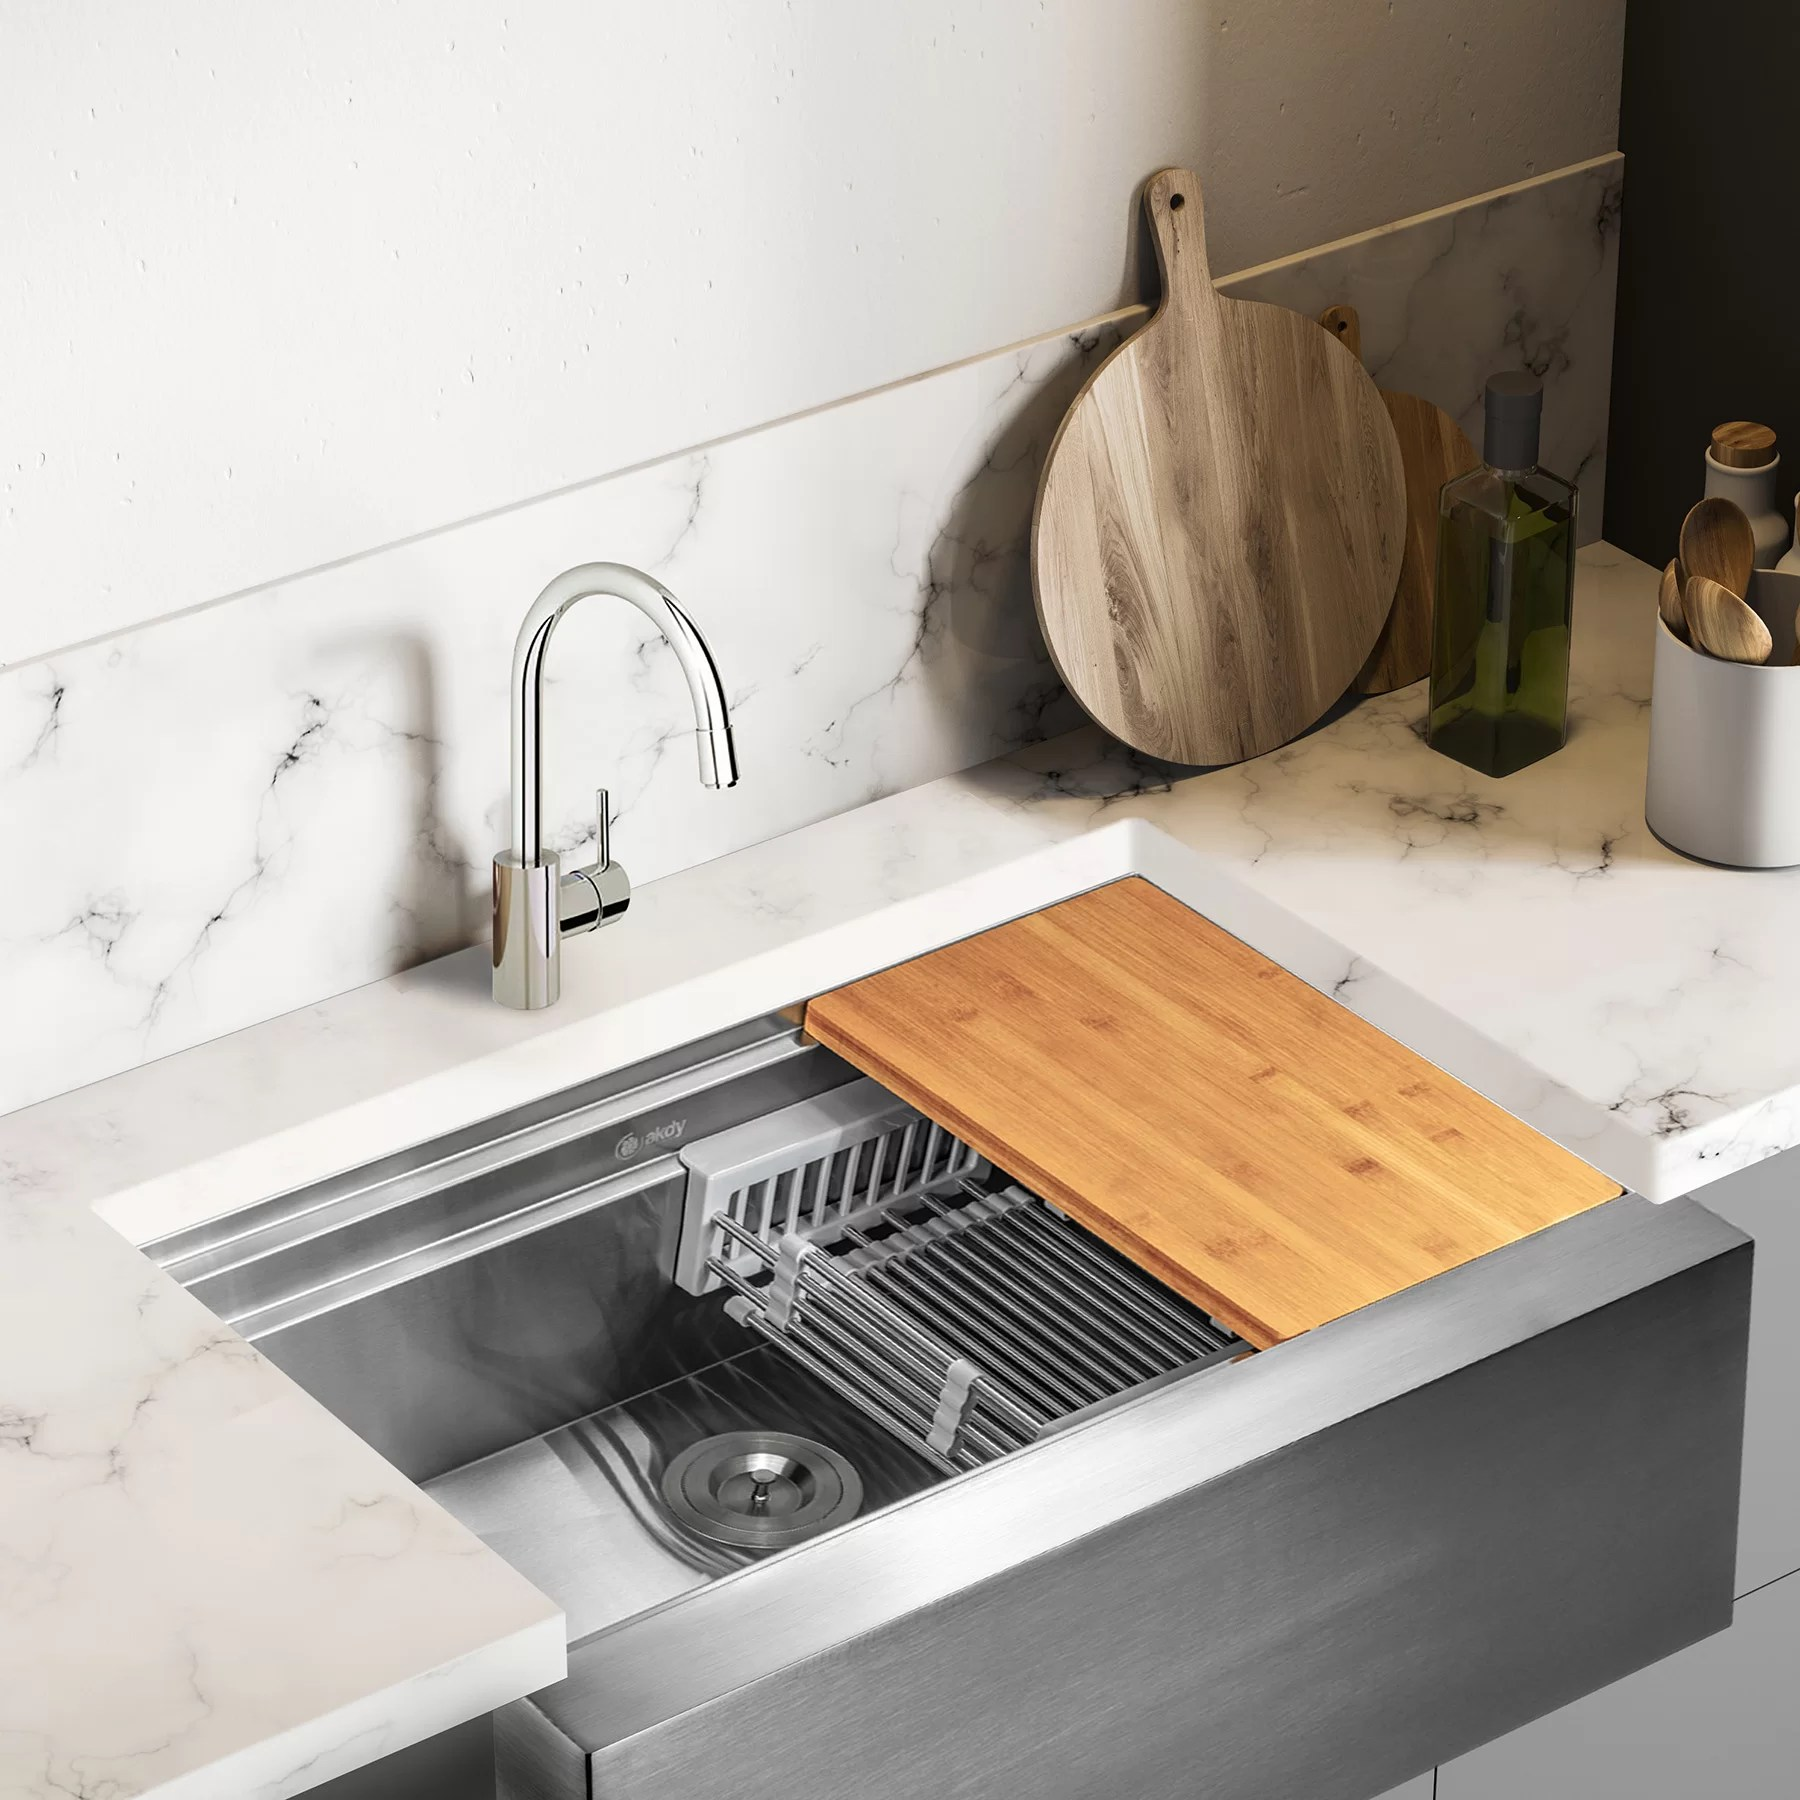 new burnished gunmetal black stainless steel kitchen sink r10 hand made pantry home improvement home plumbing fixtures